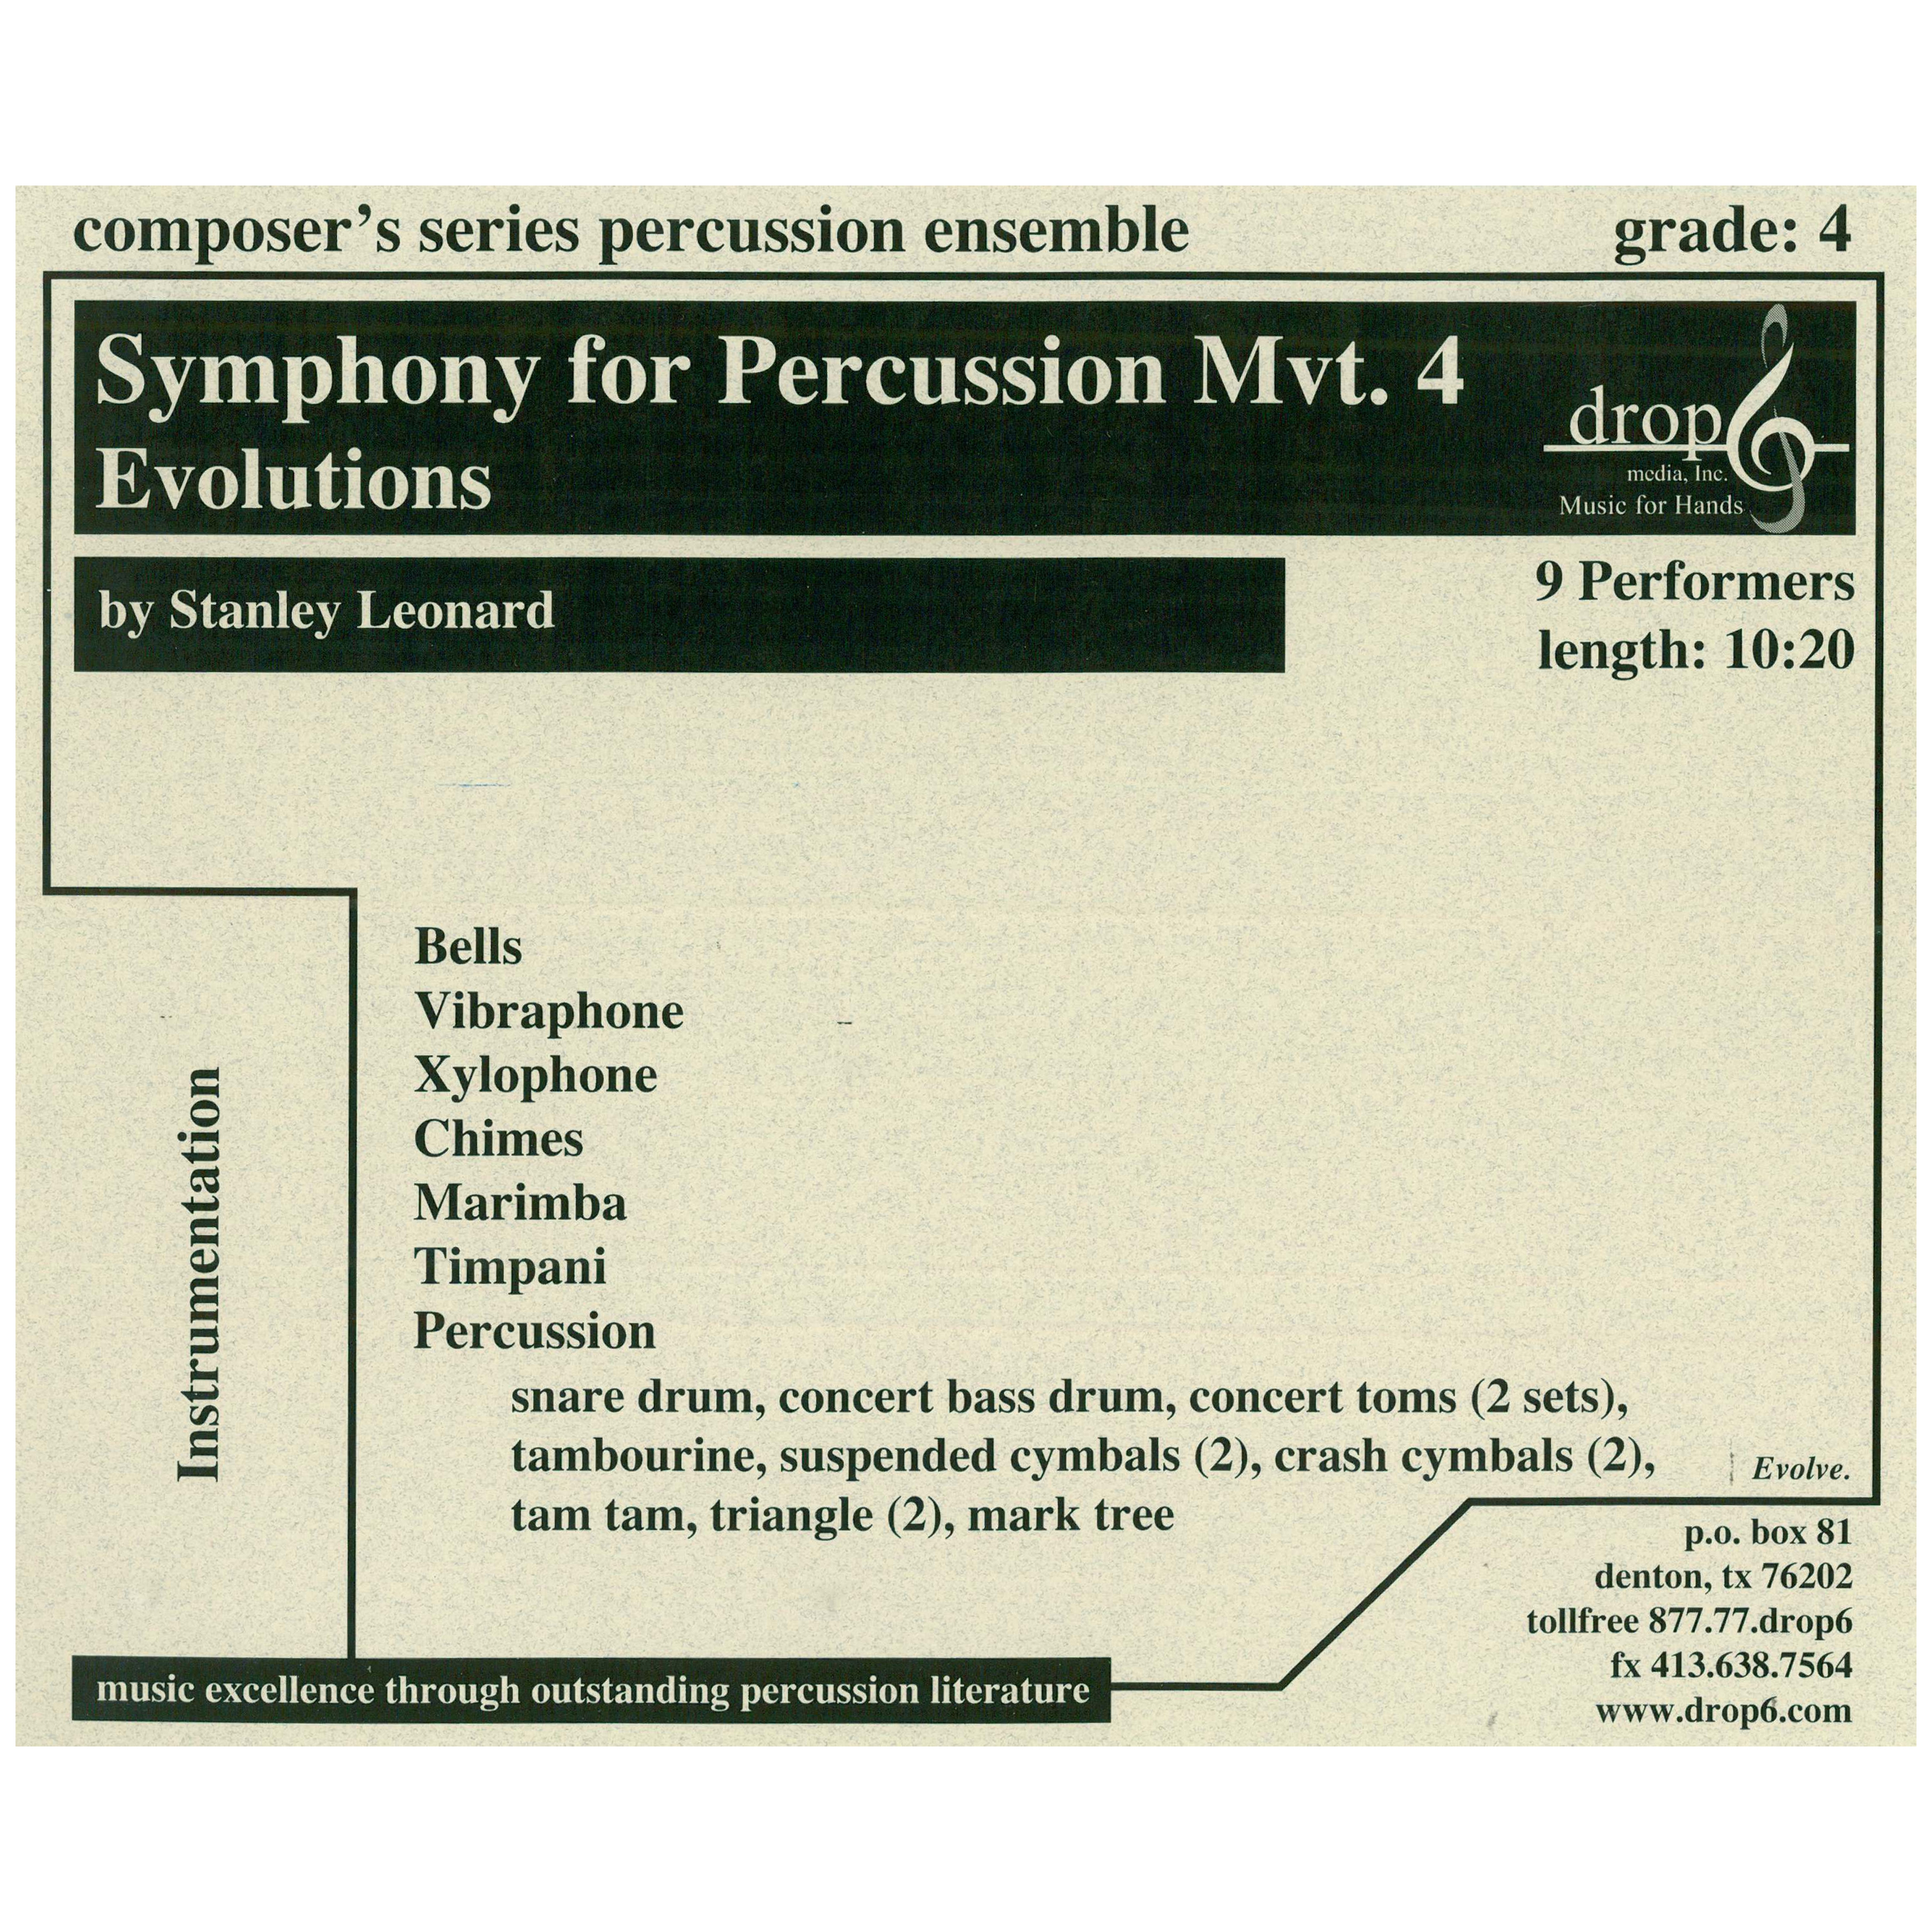 Symphony for Percussion, Mvt. 4: Evolutions by Stanley Leonard